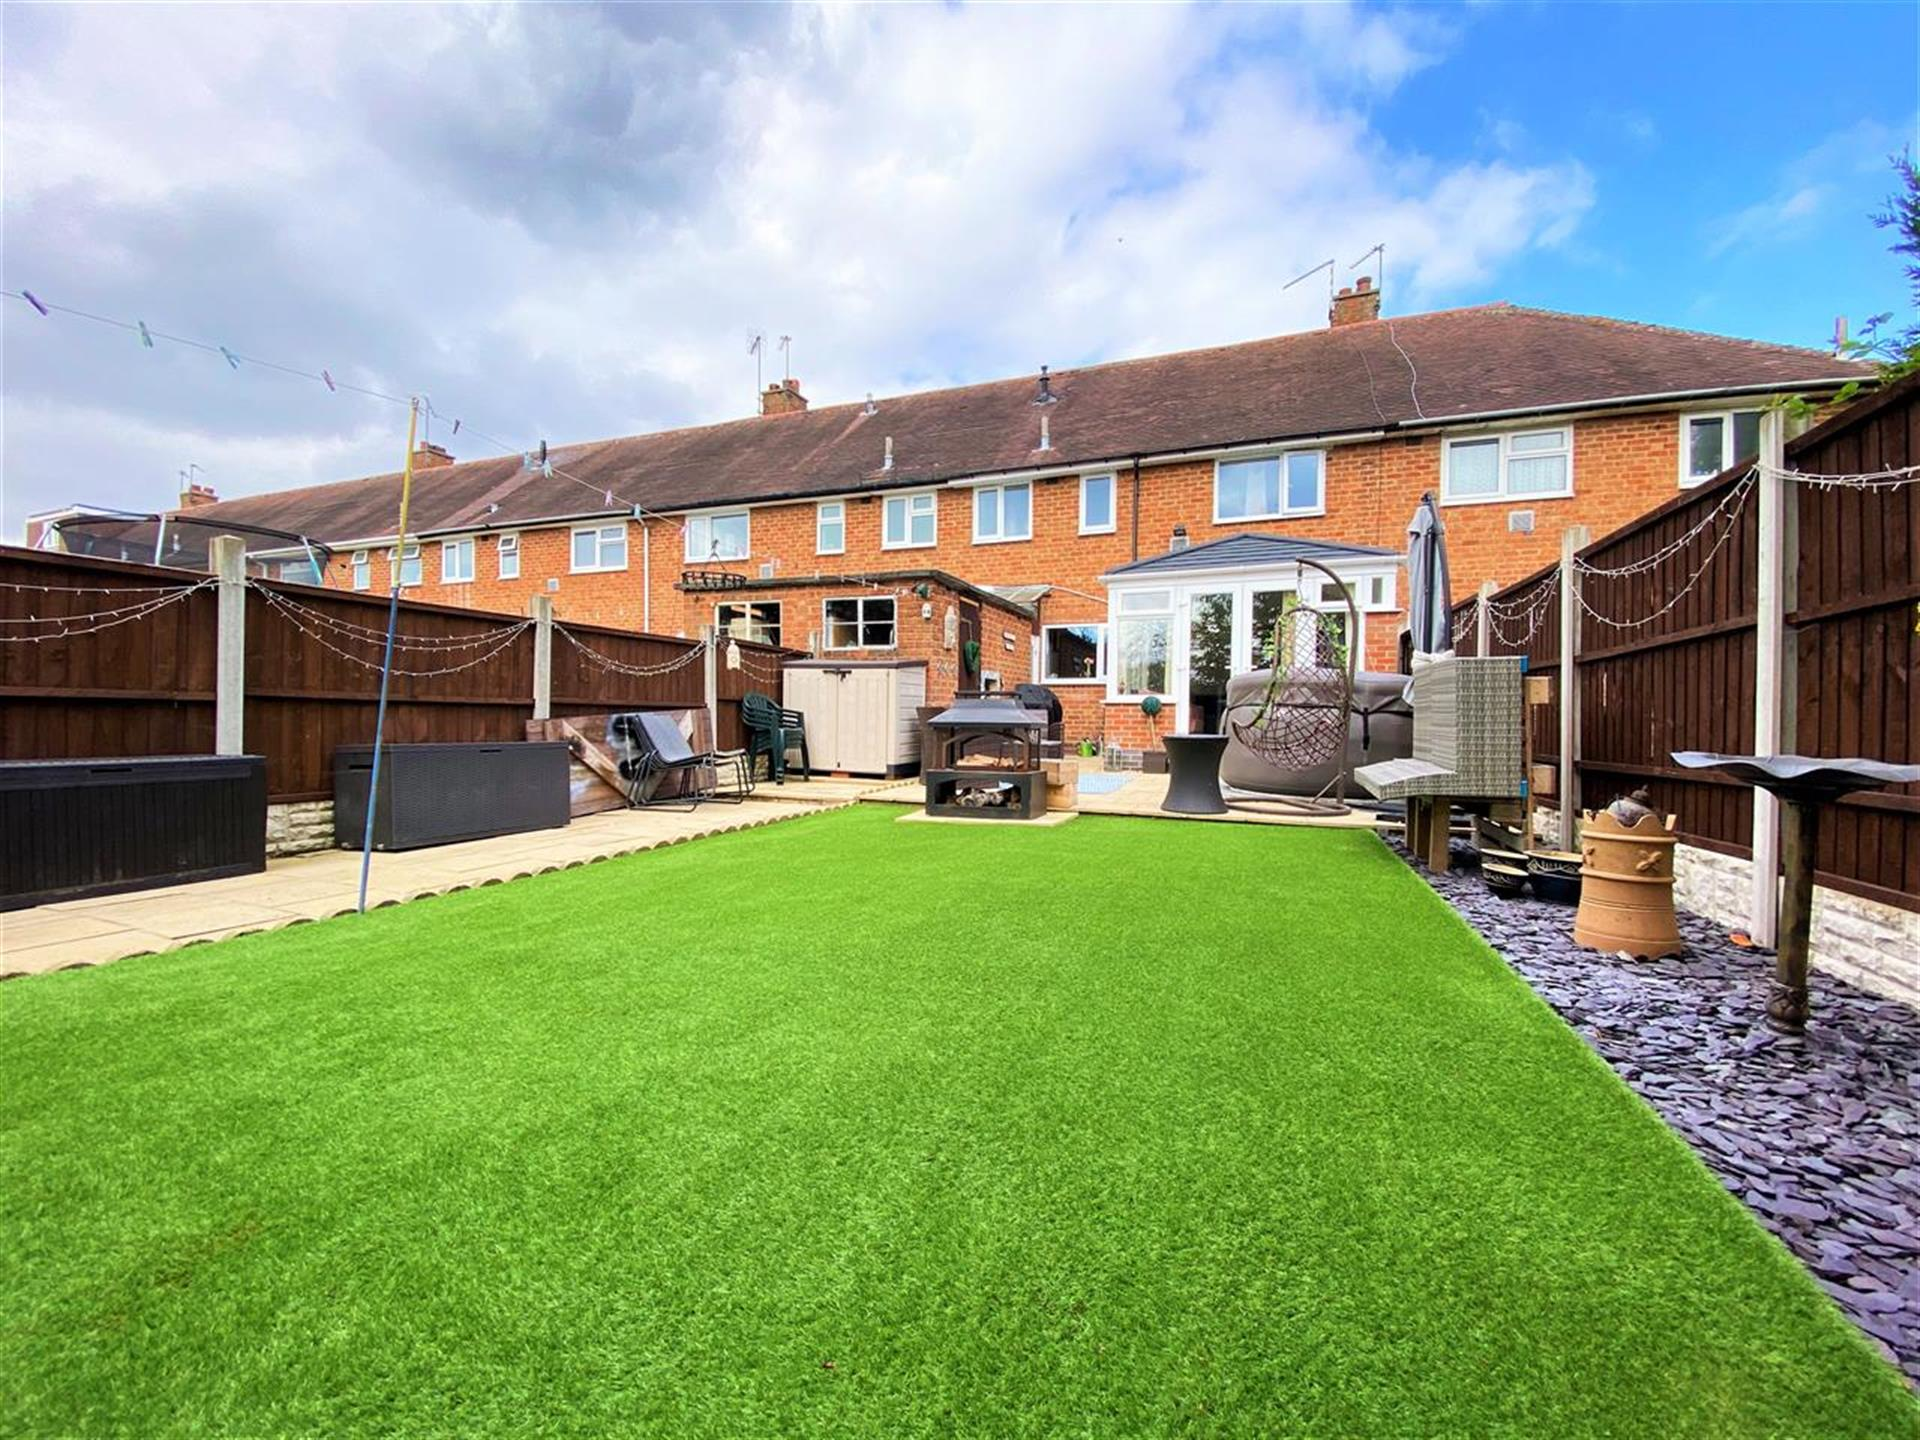 2 Bedroom Terraced House For Sale - Image 15